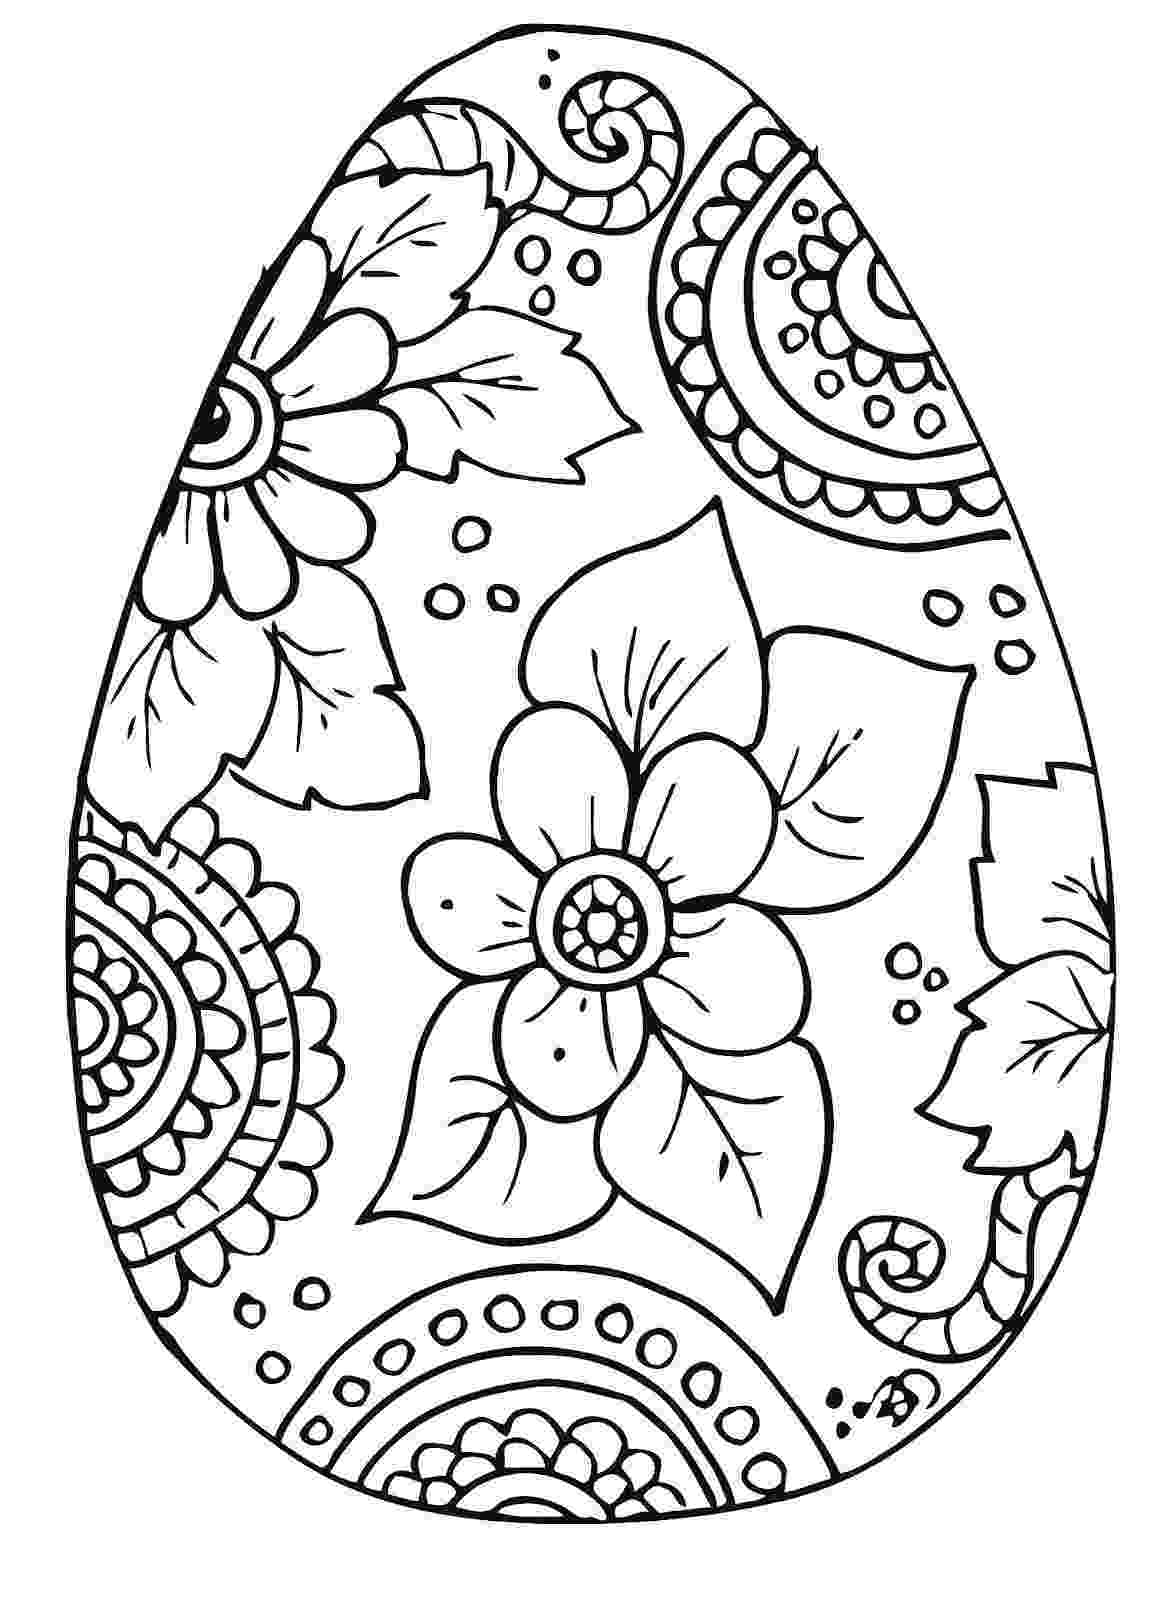 printable colouring sheets for easter printable easter egg coloring pages for kids cool2bkids printable for colouring sheets easter